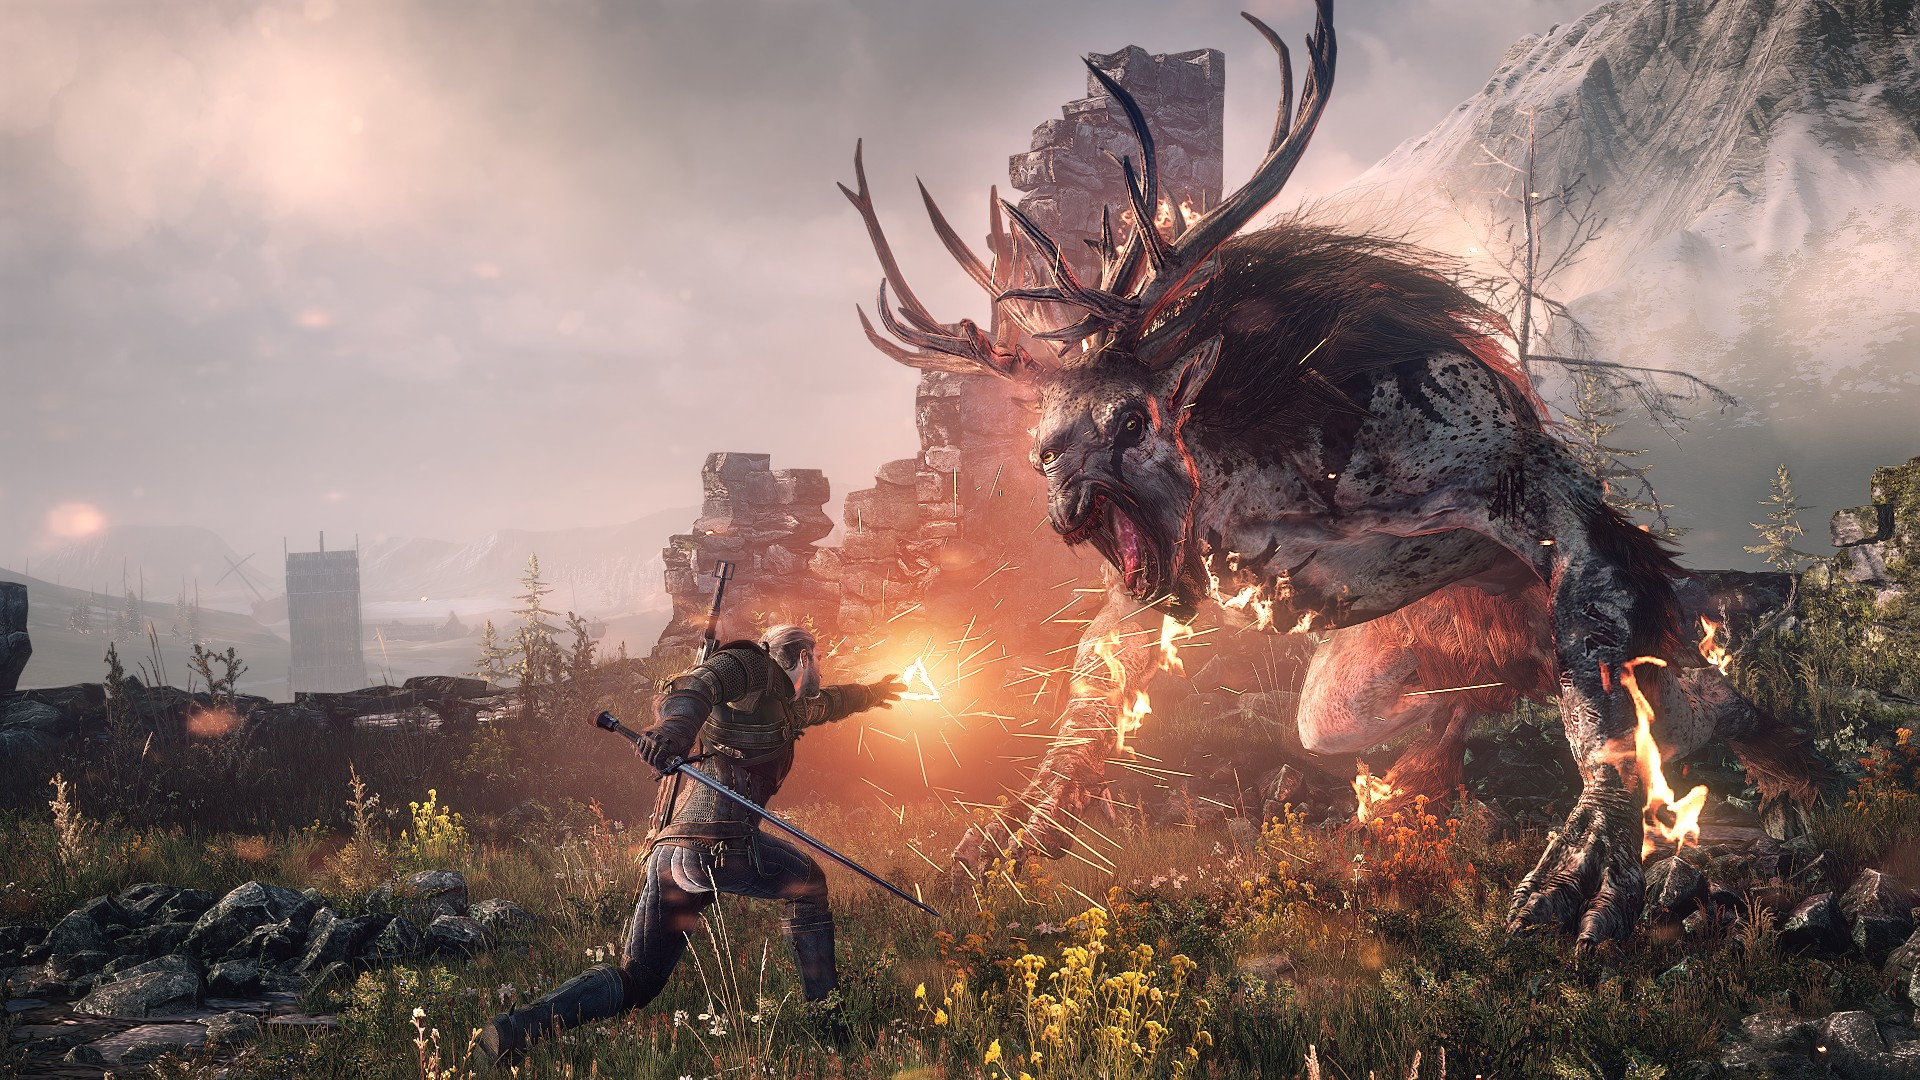 4k Resolution Screenshot Of The Witcher 3 Wild Hunt Revealed